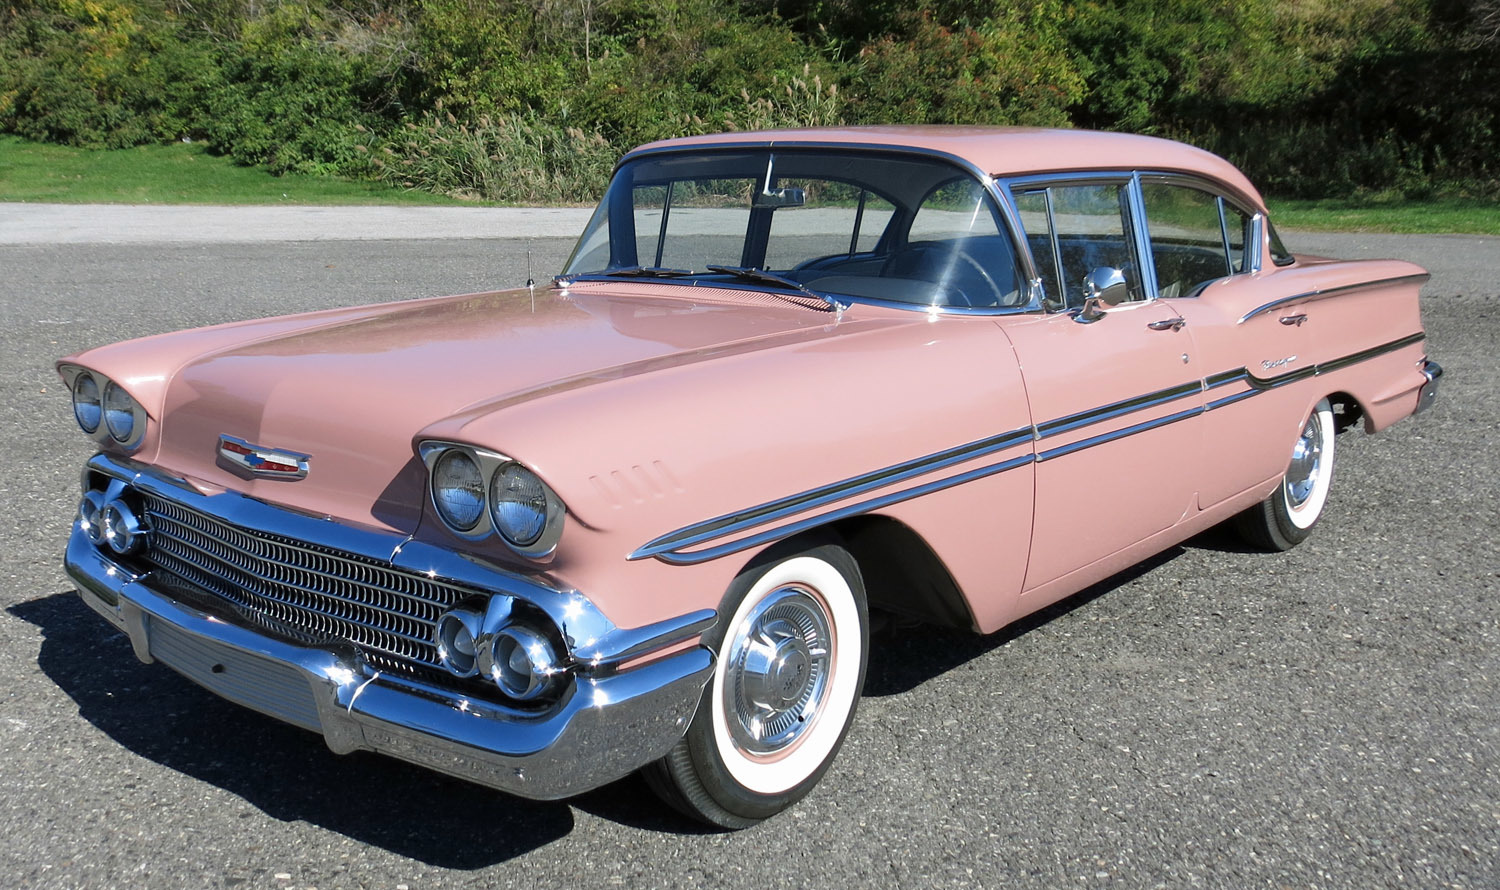 1958 Chevrolet Biscayne Connors Motorcar Company